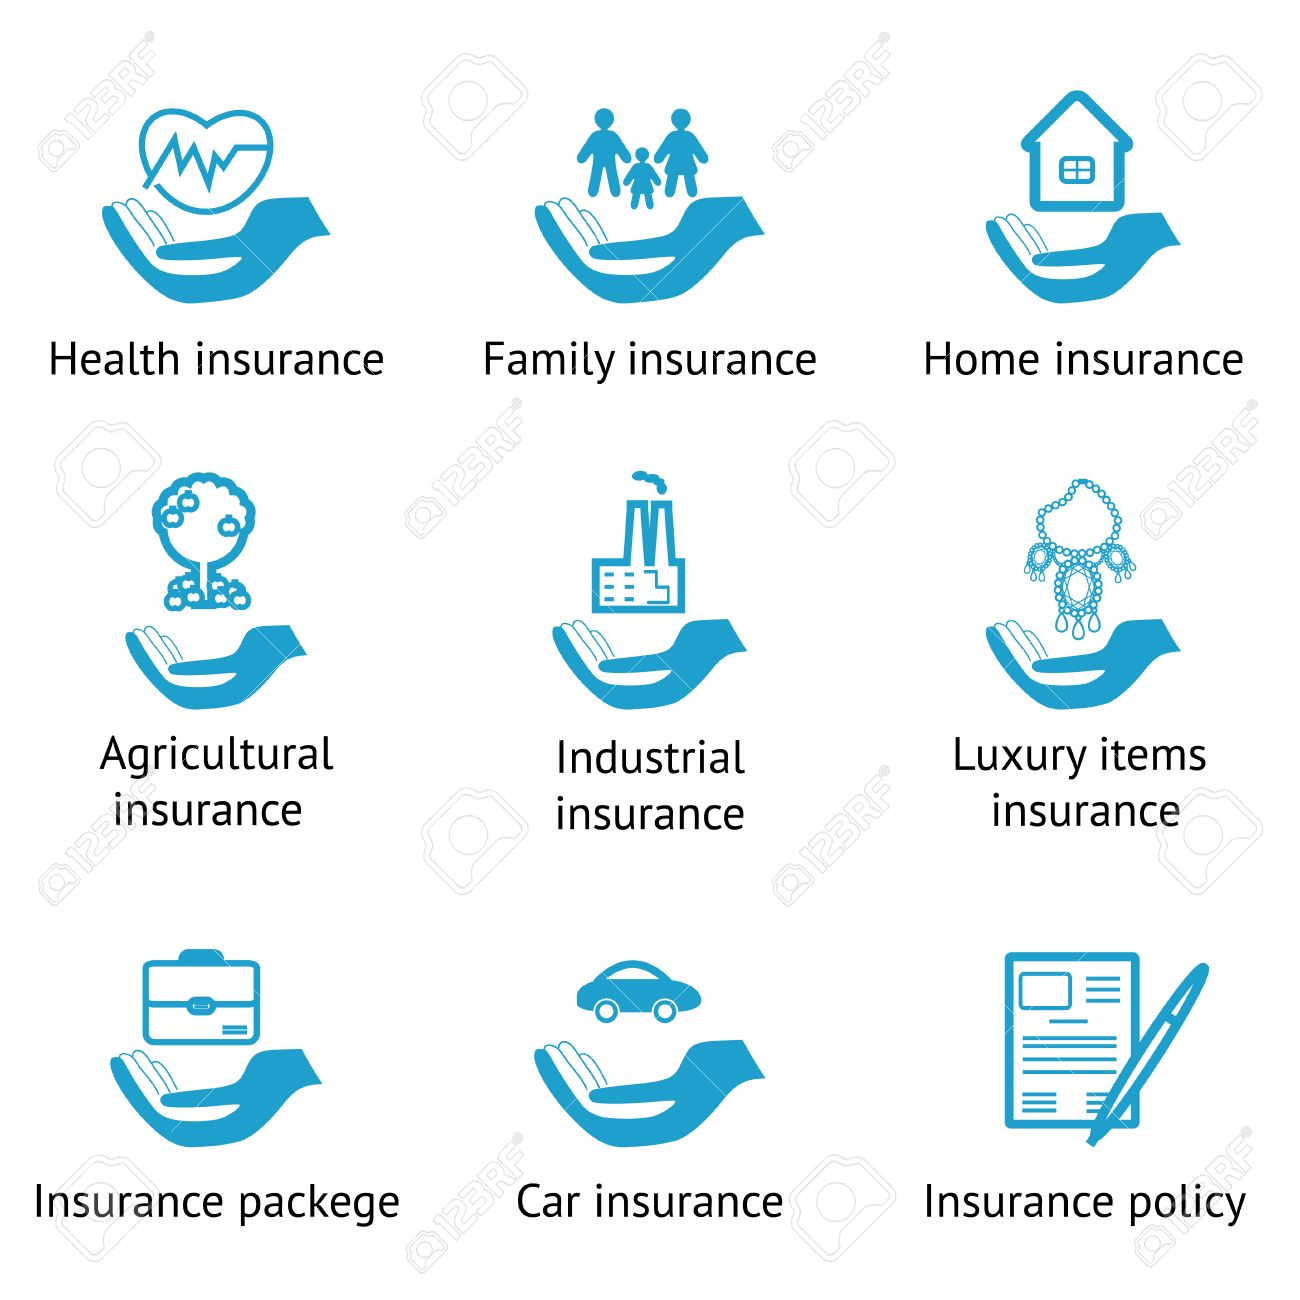 Home Luxury Items vector insurance pictograms set- home, auto, health, life